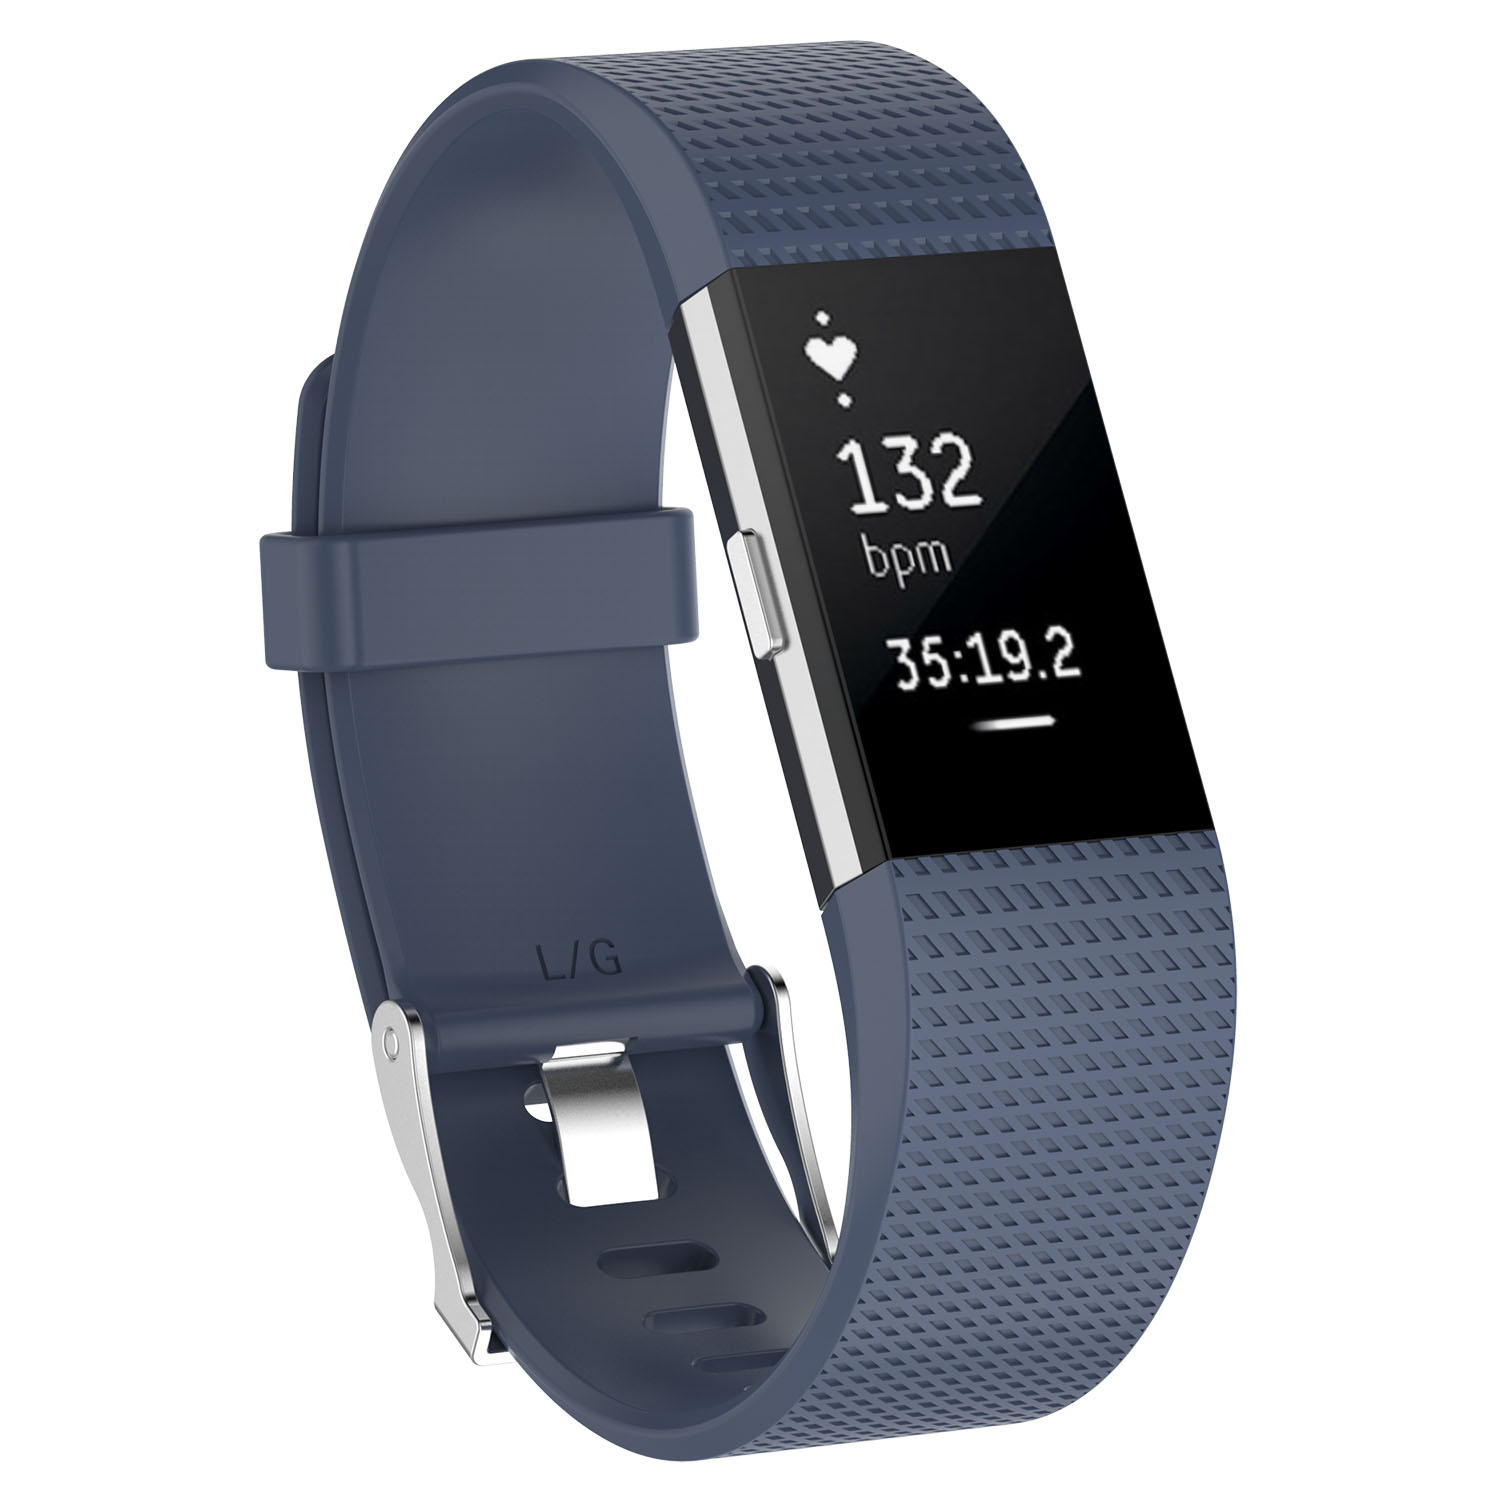 Replacement-Silicone-Wristband-Watch-Strap-Bands-Bracelet-For-Fitbit-Charge-2 thumbnail 74